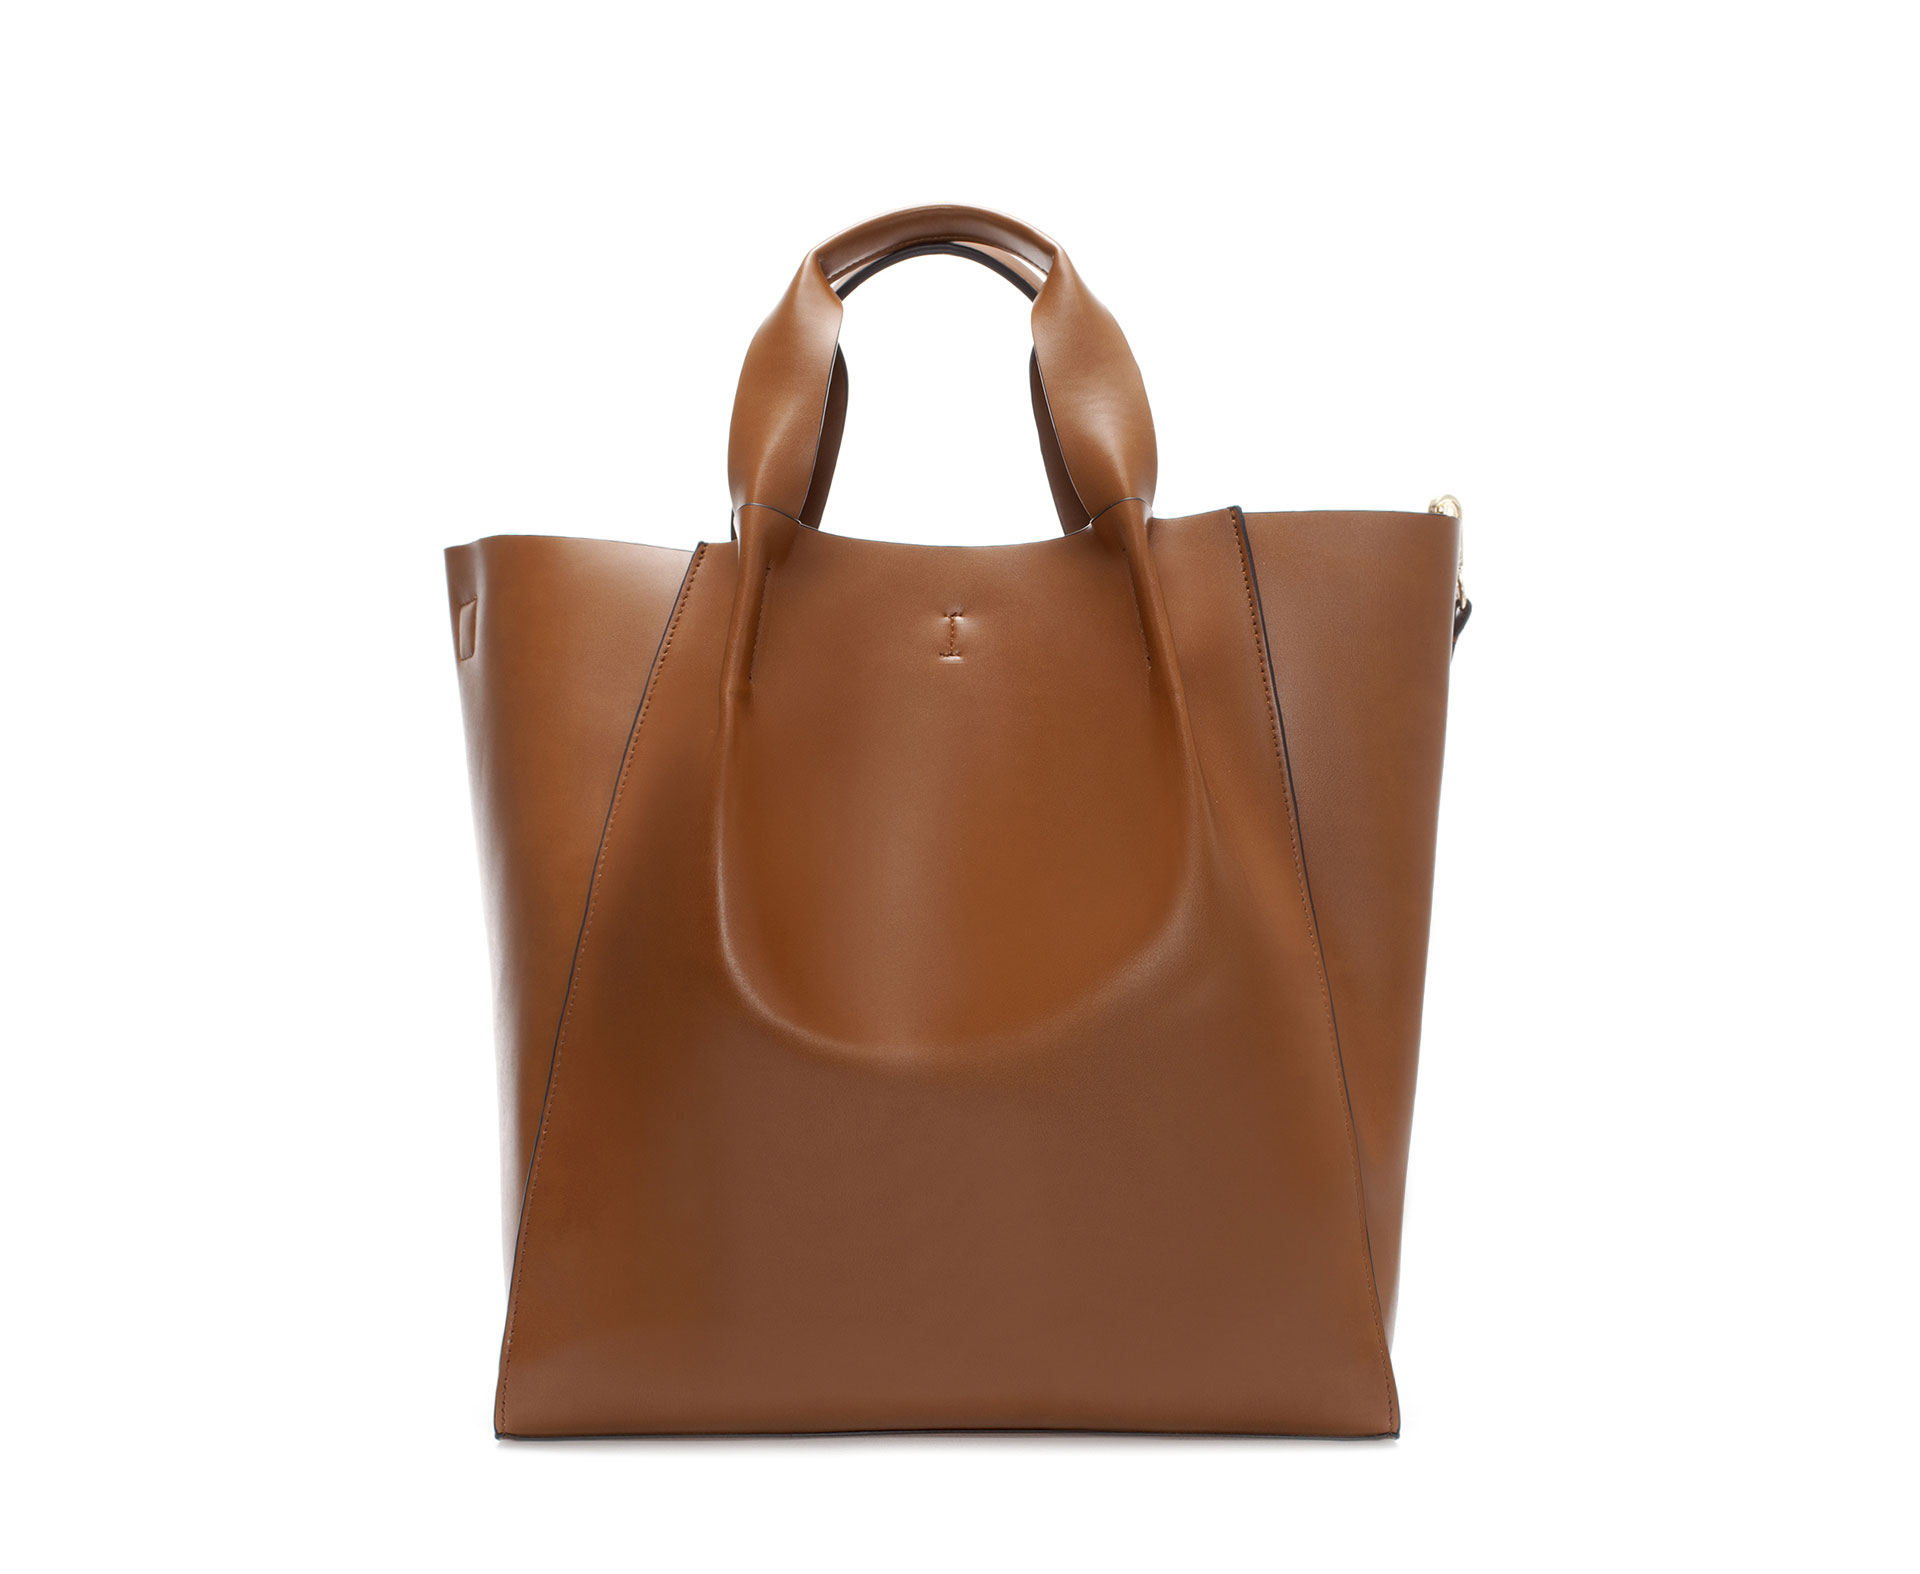 Zara Shopper Bag in Brown (Leather) | Lyst